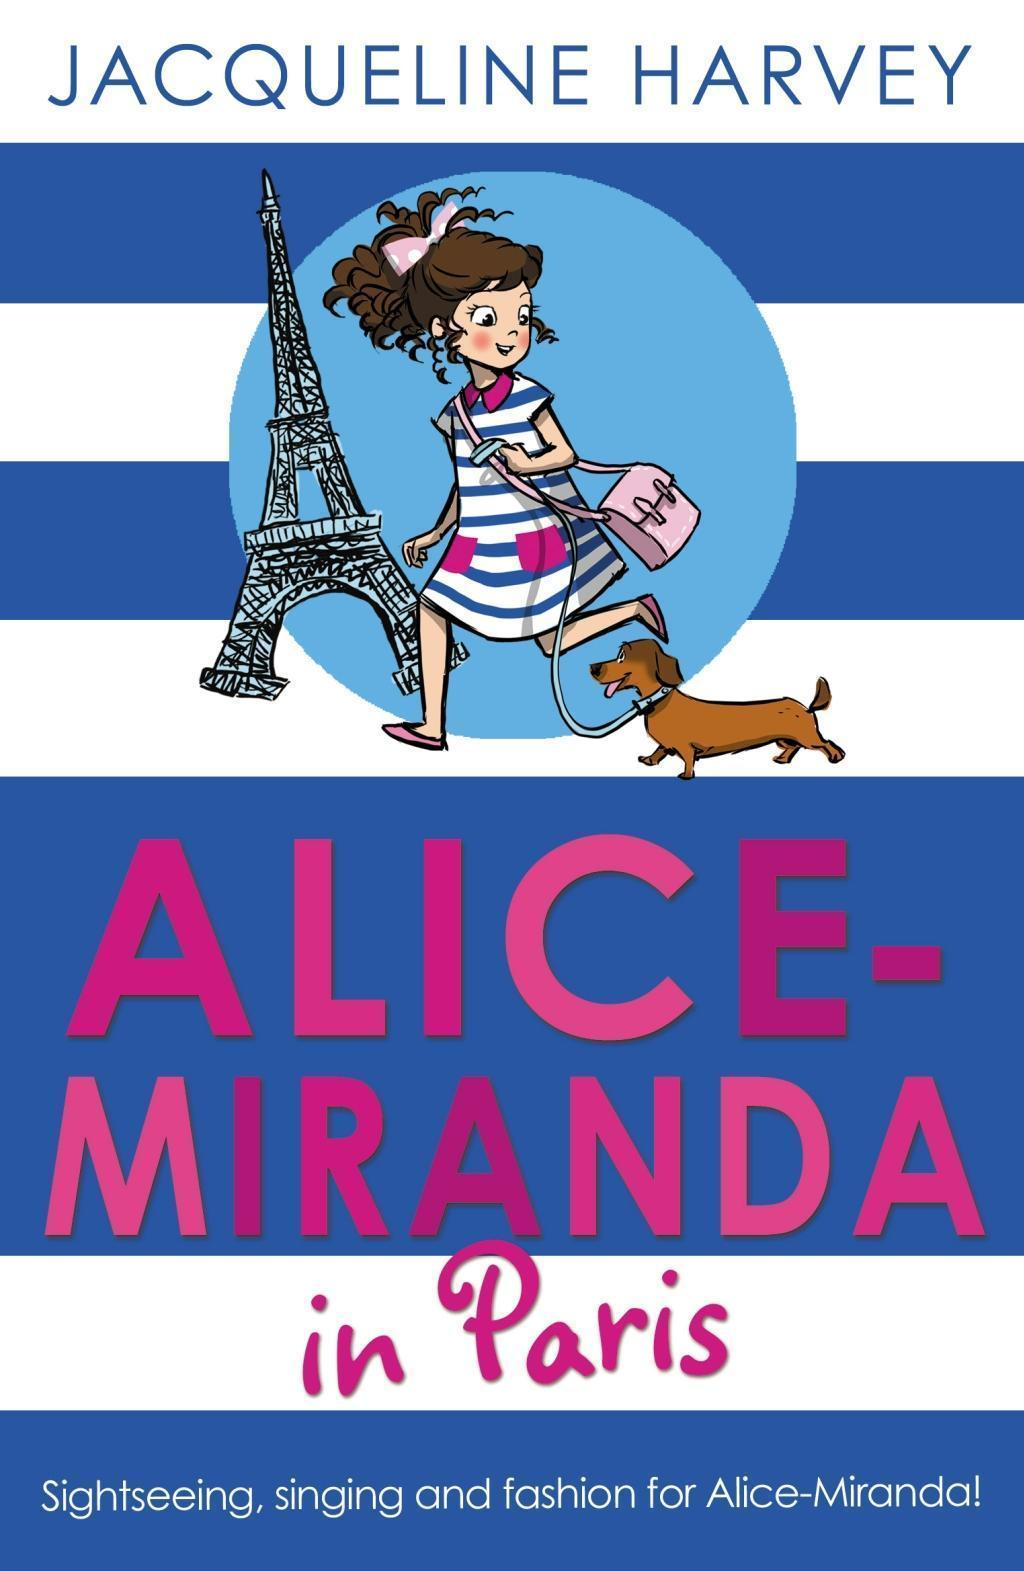 Alice-Miranda in Paris